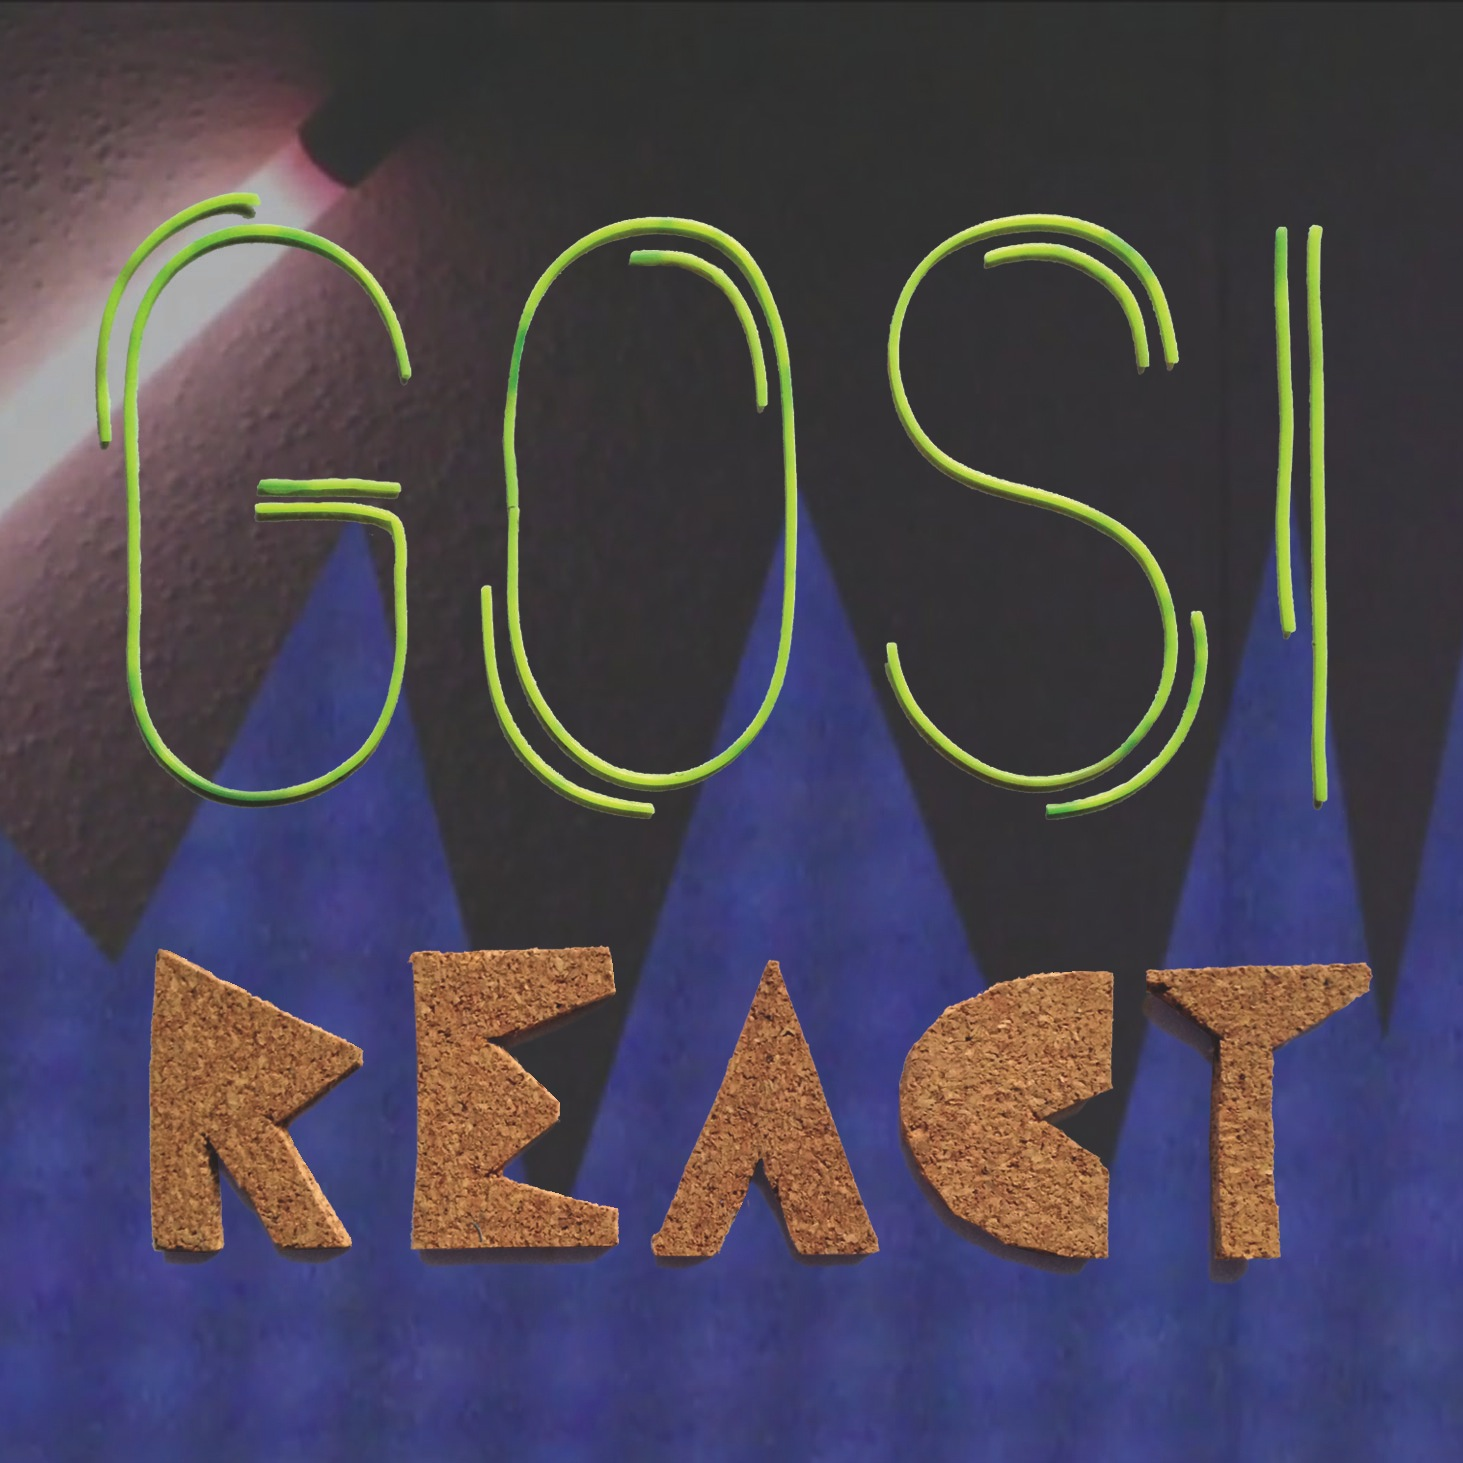 Go to Gosi - React on Spotify!